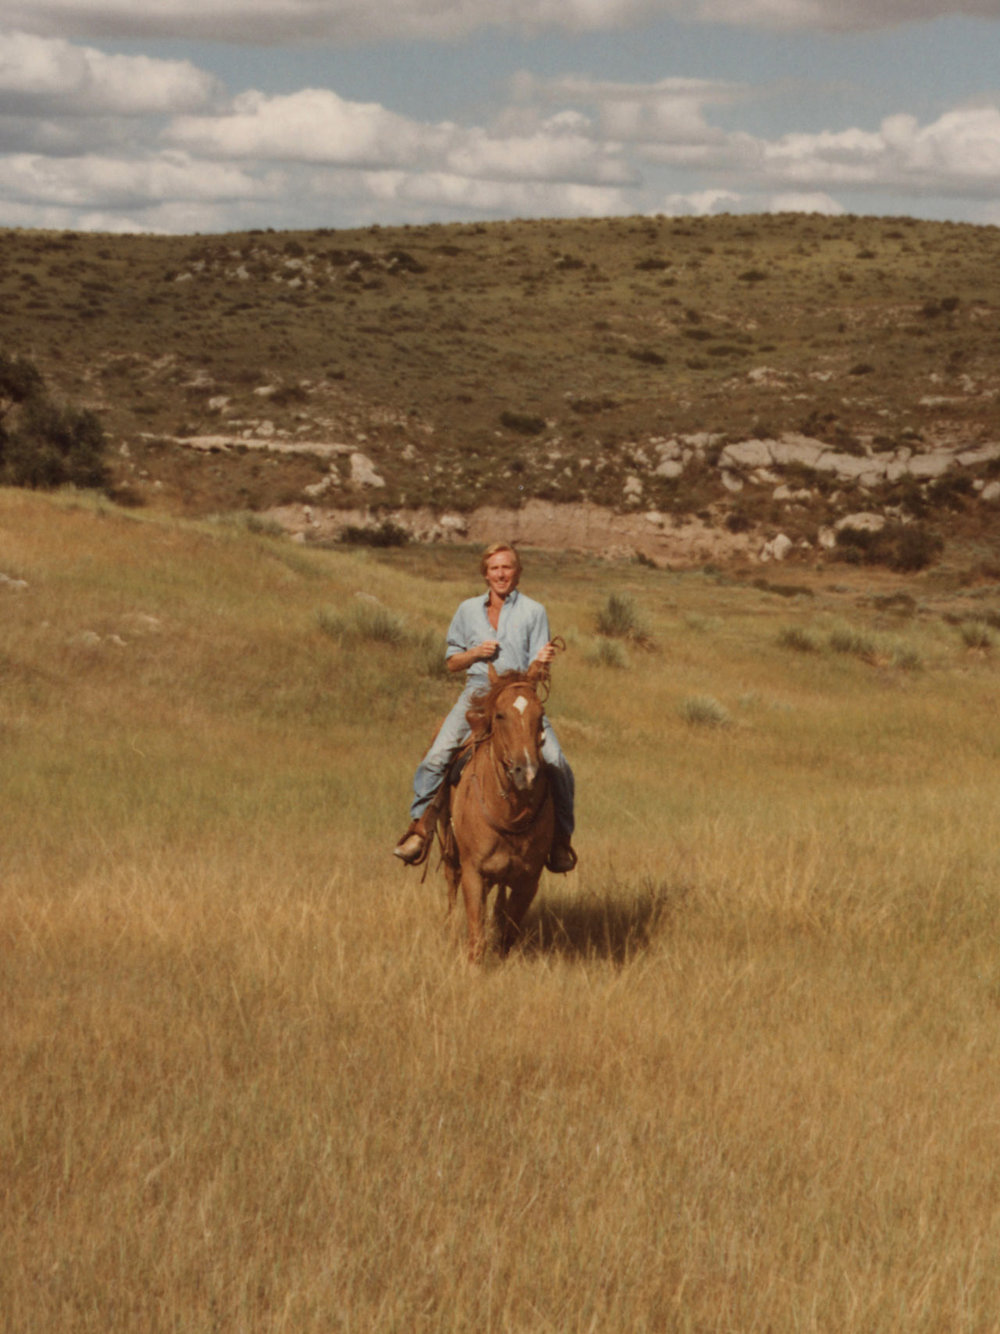 A young Jerry Helling riding a horse - growing up on a ranch in Colorado